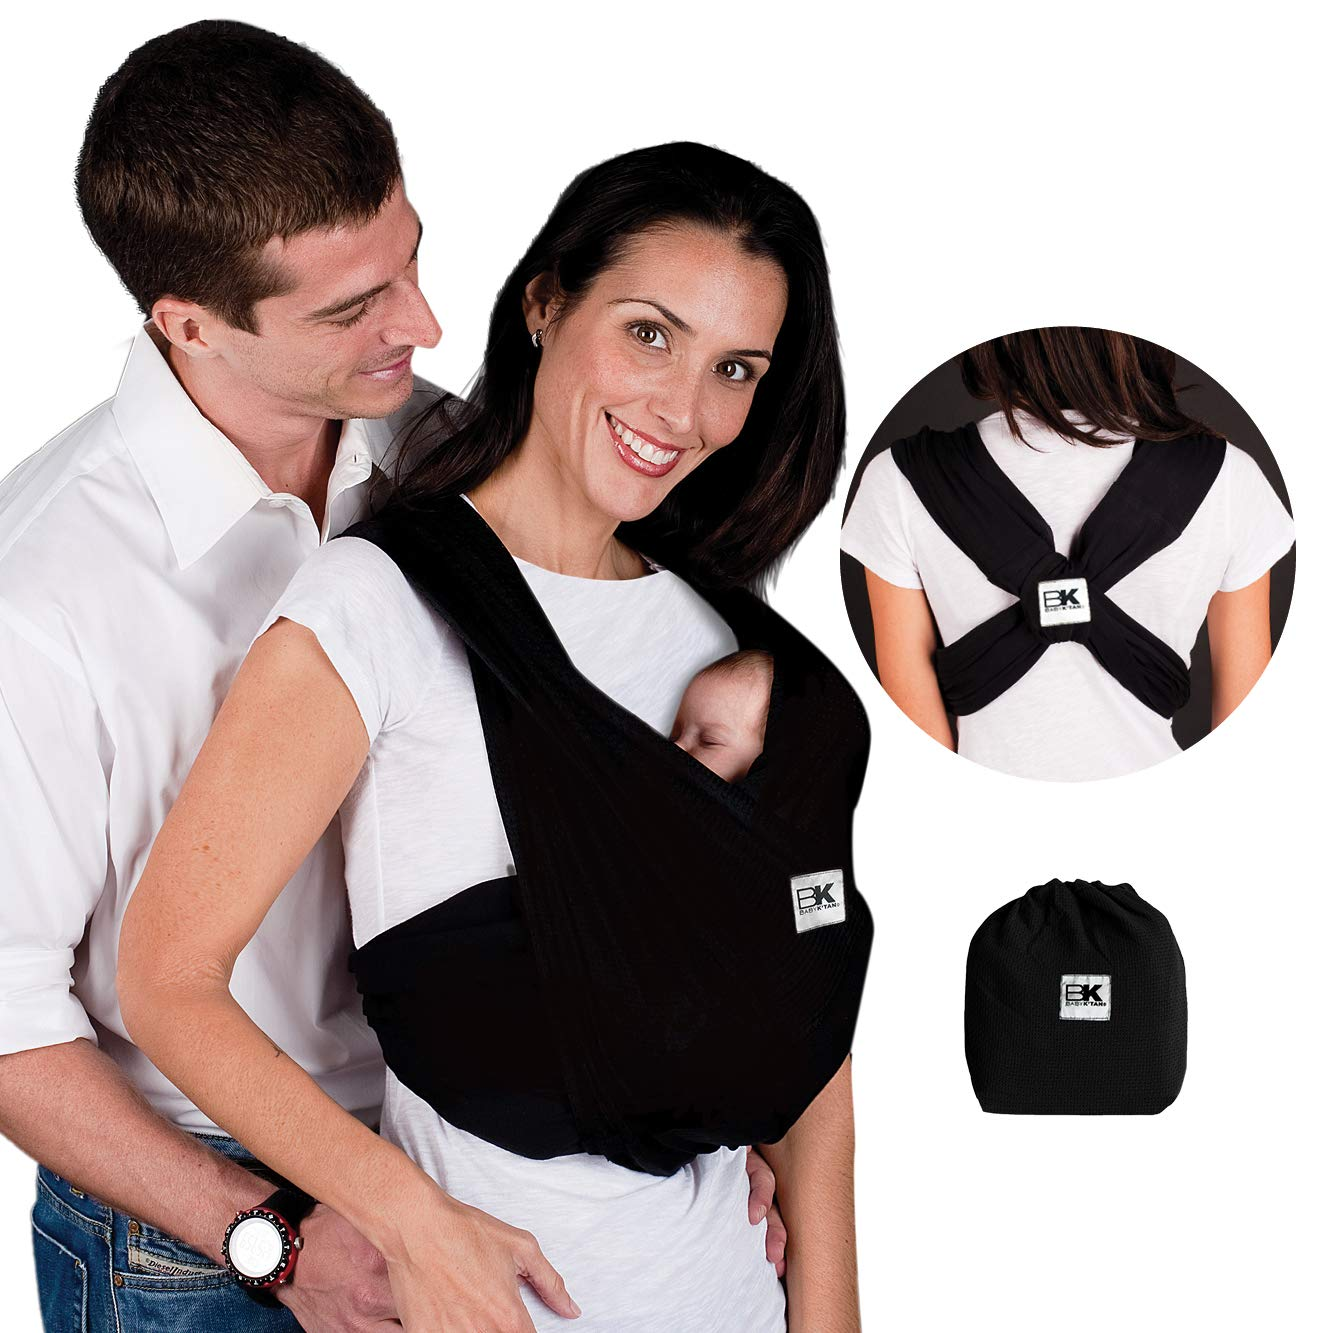 Baby K'tan Original Baby Wrap Carrier, Infant and Child Sling - Simple Wrap Holder for Babywearing - No Rings or Buckles - Carry Newborn up to 35 lbs, Black, ,Women 10-14 (Medium), Men 39-42.